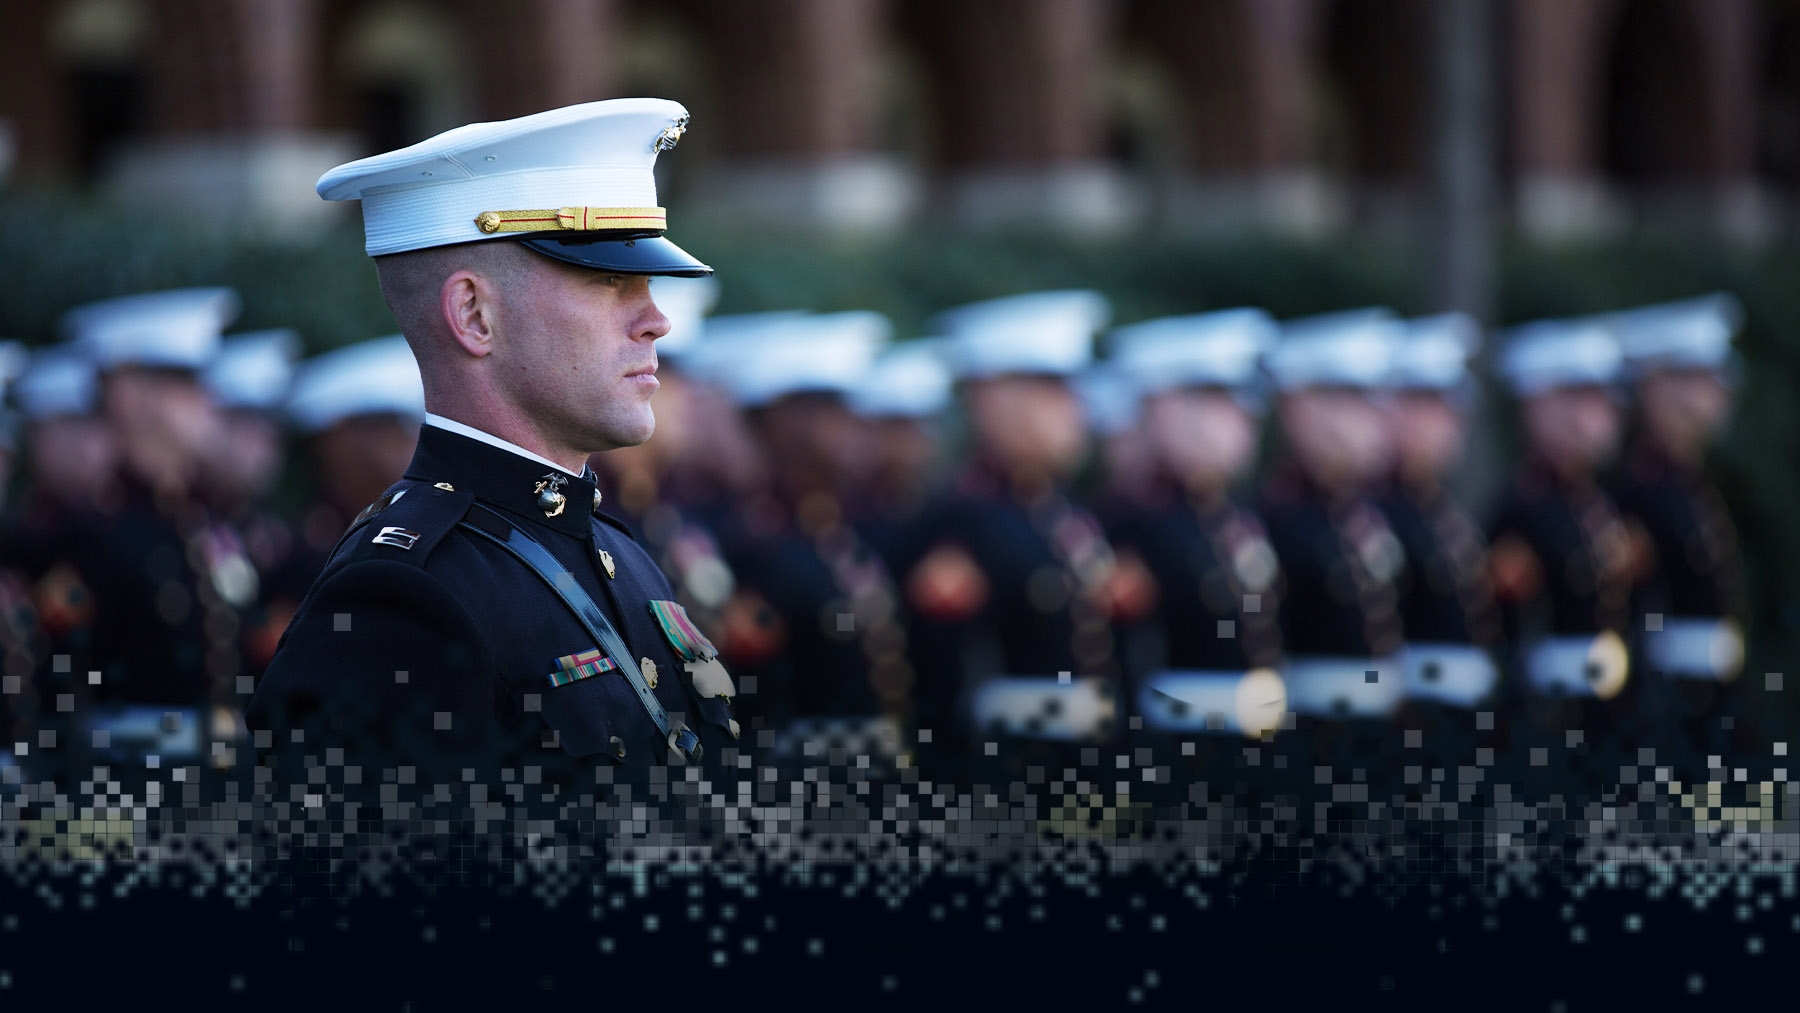 A Marine Officer in dress blues stands ahead of enlisted Marines in formation.